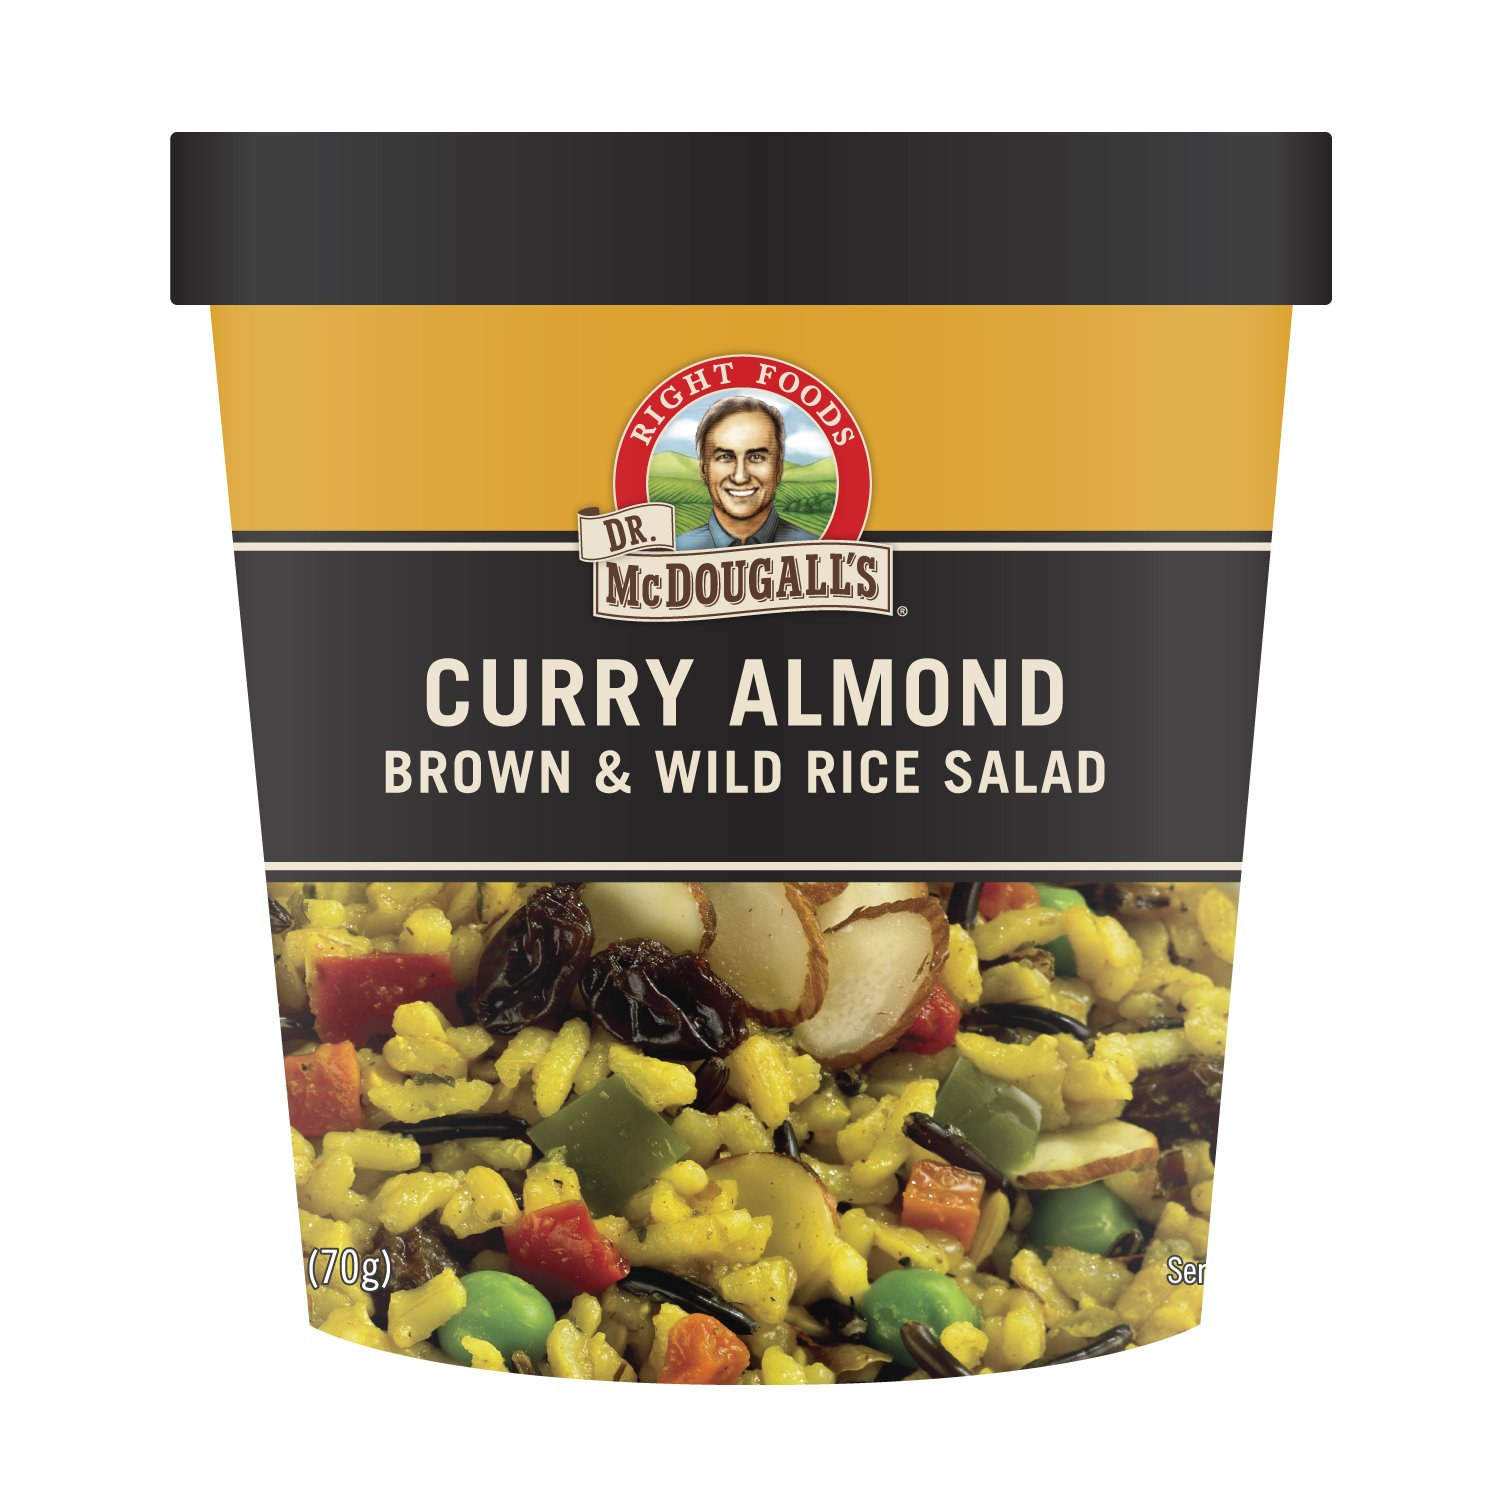 Dr. McDougall's Right Foods Vegan Curry with Brown & Wild Rice Pilaf, 2.5-Ounce Cups (Pack of 6) by Dr. McDougall's Right Foods